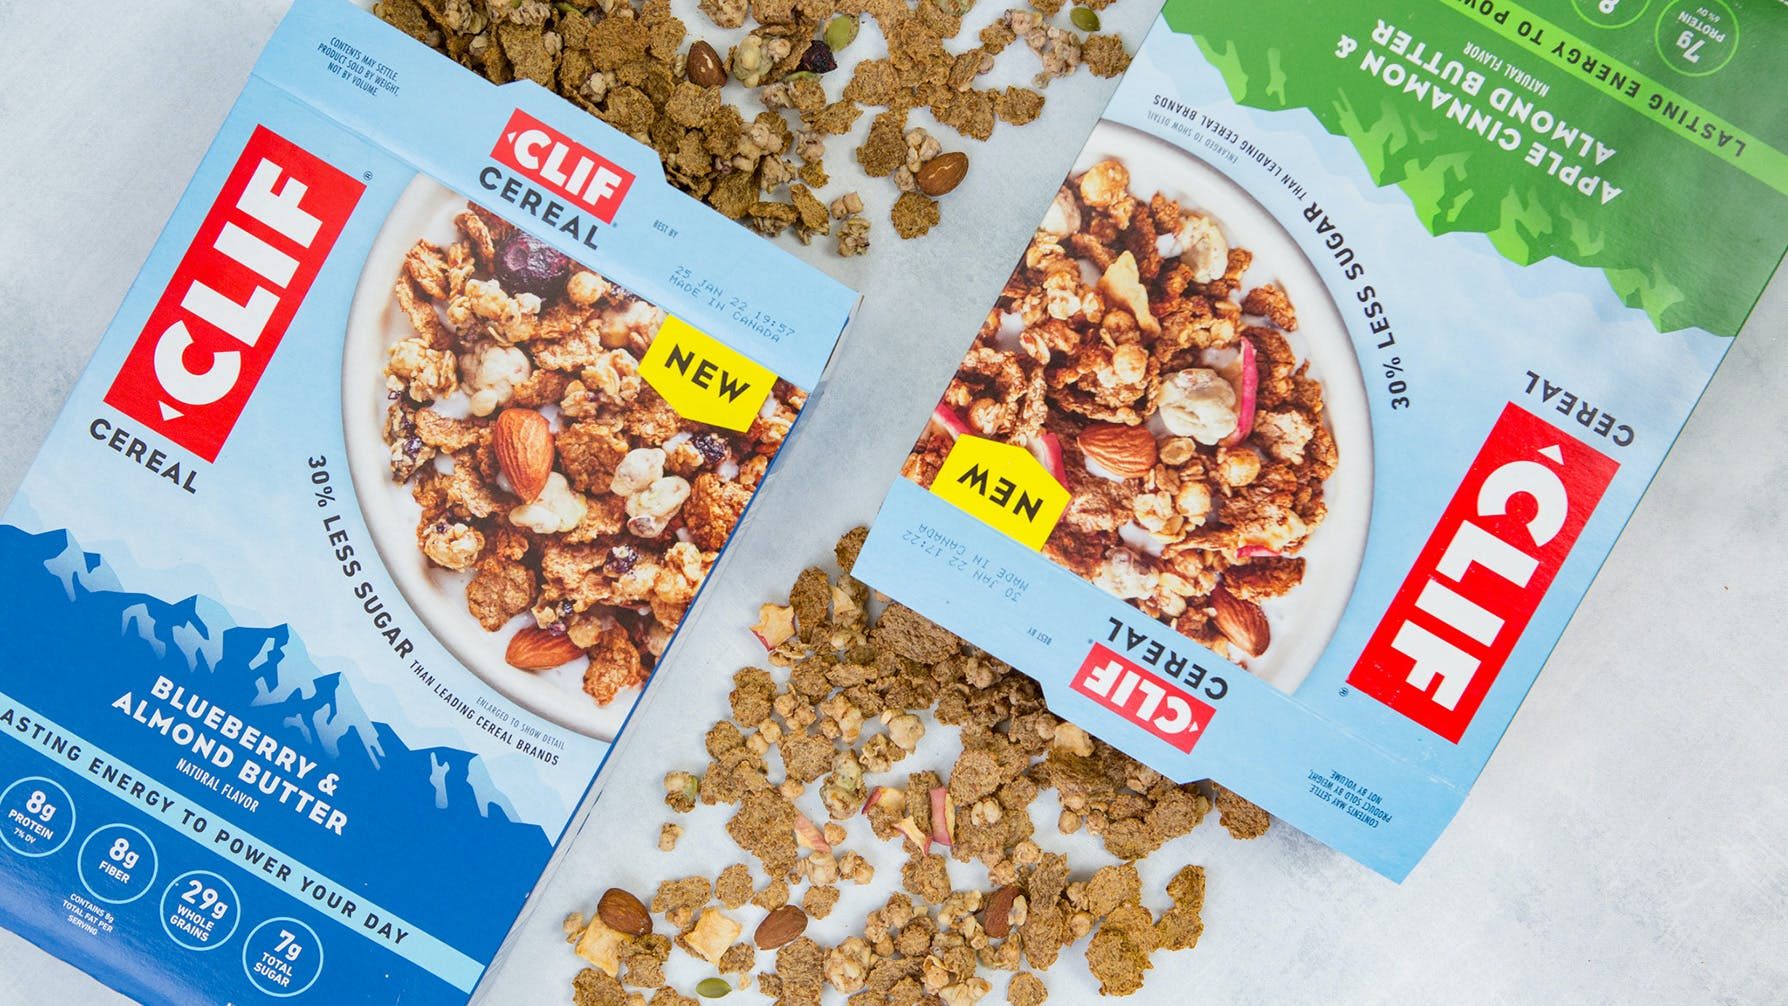 CLIF Cereal Blueberry and Almond Butter and Apple Cinnamon and Almond Butter boxes